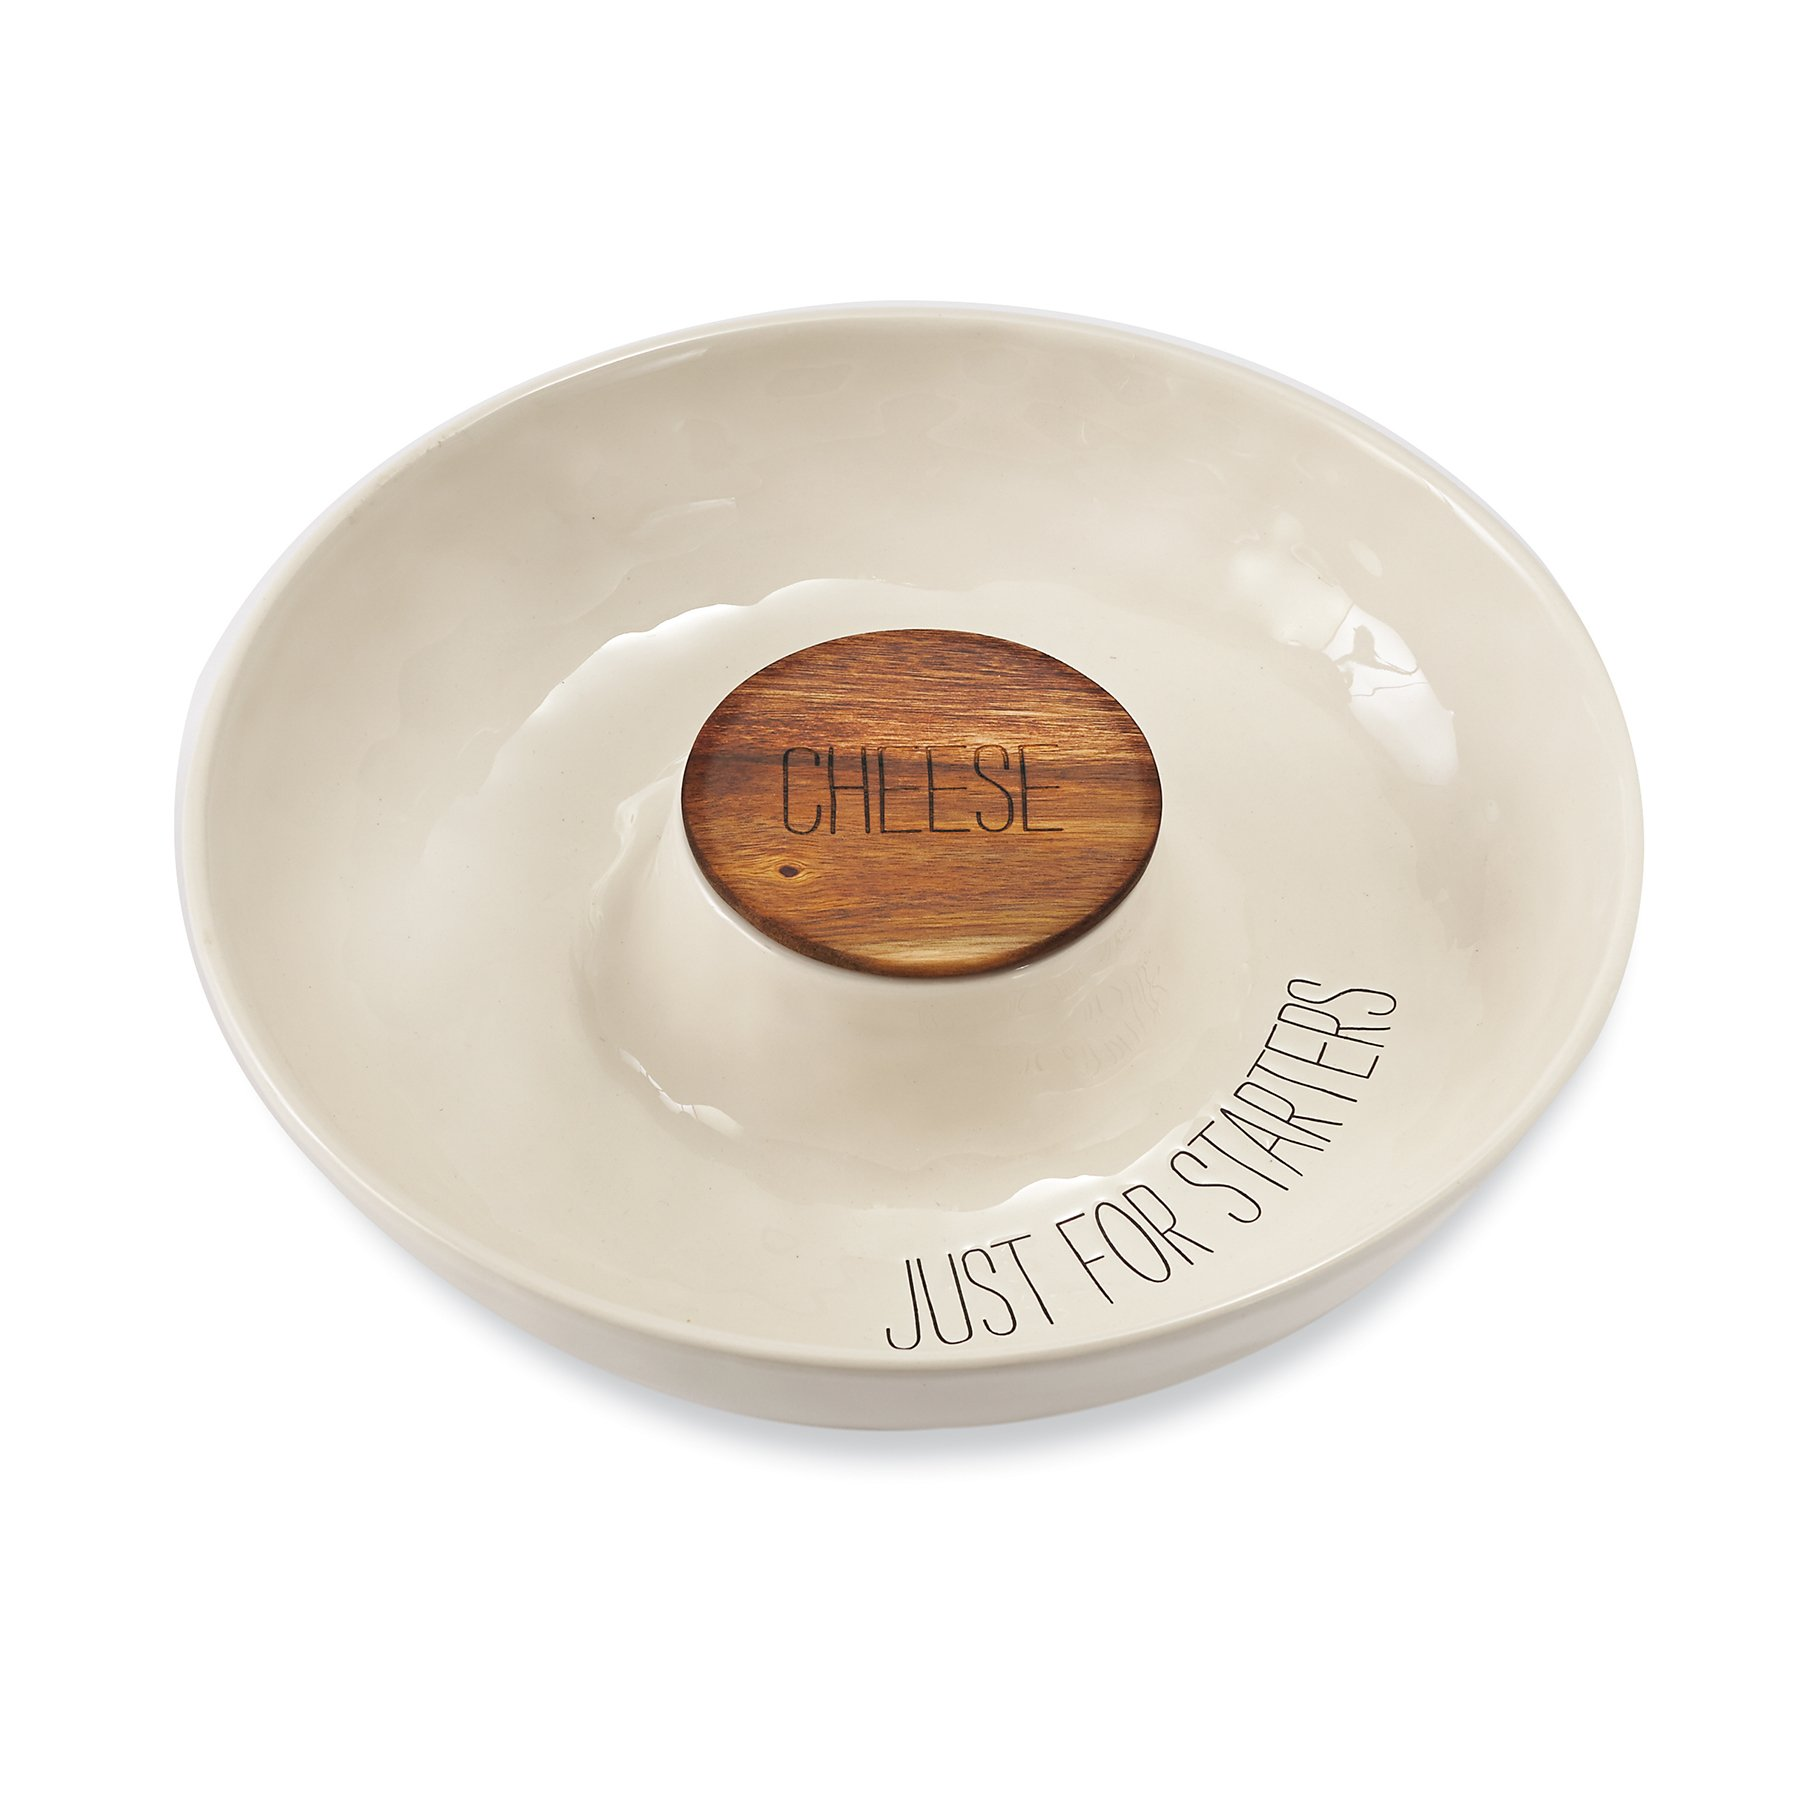 Mud Pie 4184006 Covered Cheese Chip & Dip Serving Dish, White